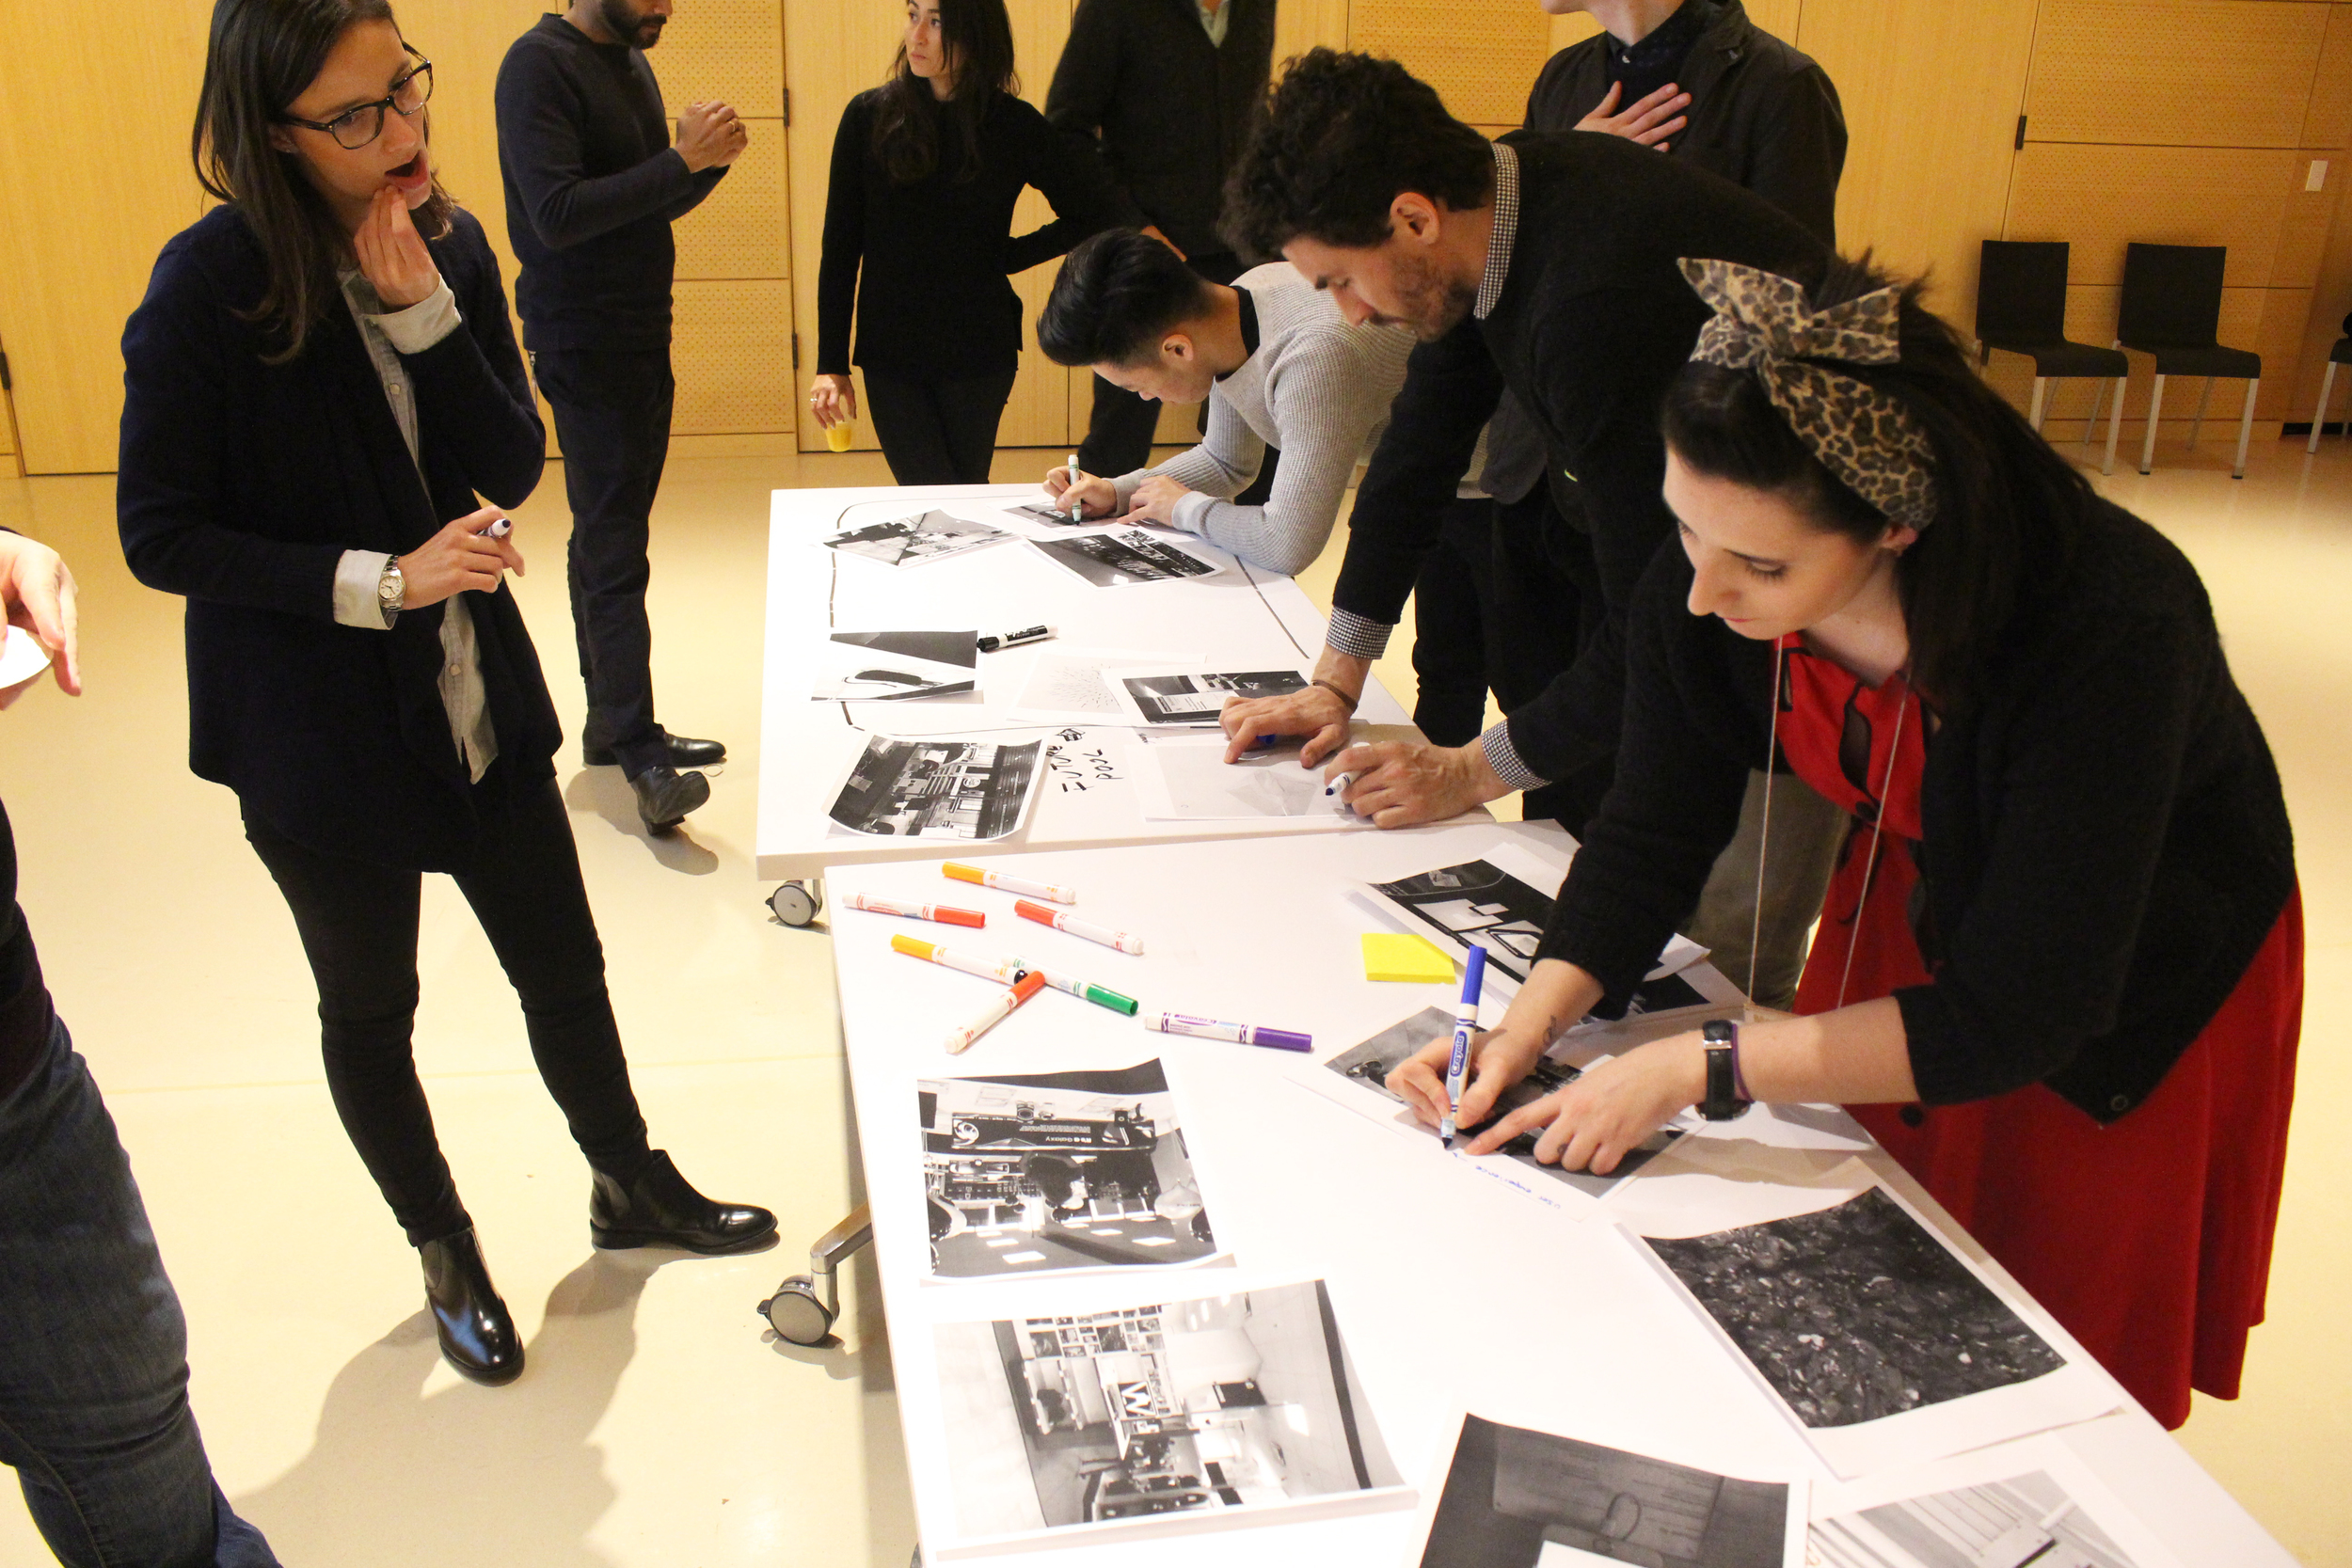 Fig.5: participants go outside the room and capture images of 'future fragments' that become prompts to initiate the process of ideation